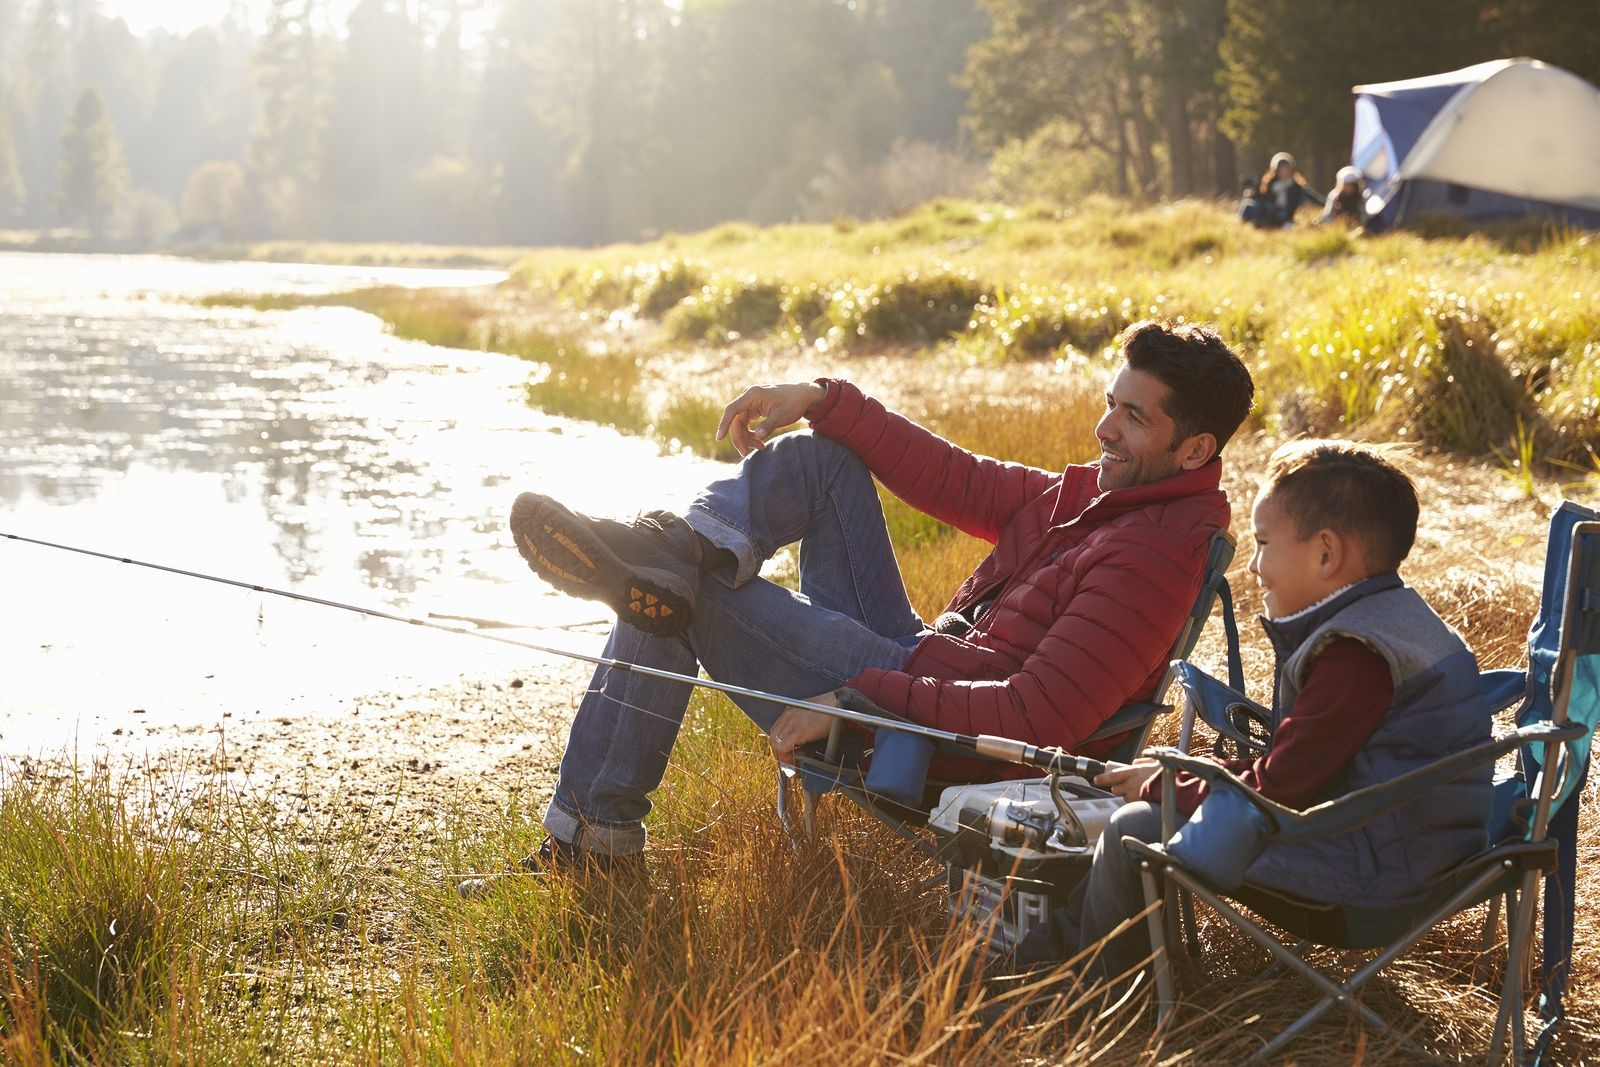 Stock Up on These Must-Haves for Boating, Fishing, or Camping Trips